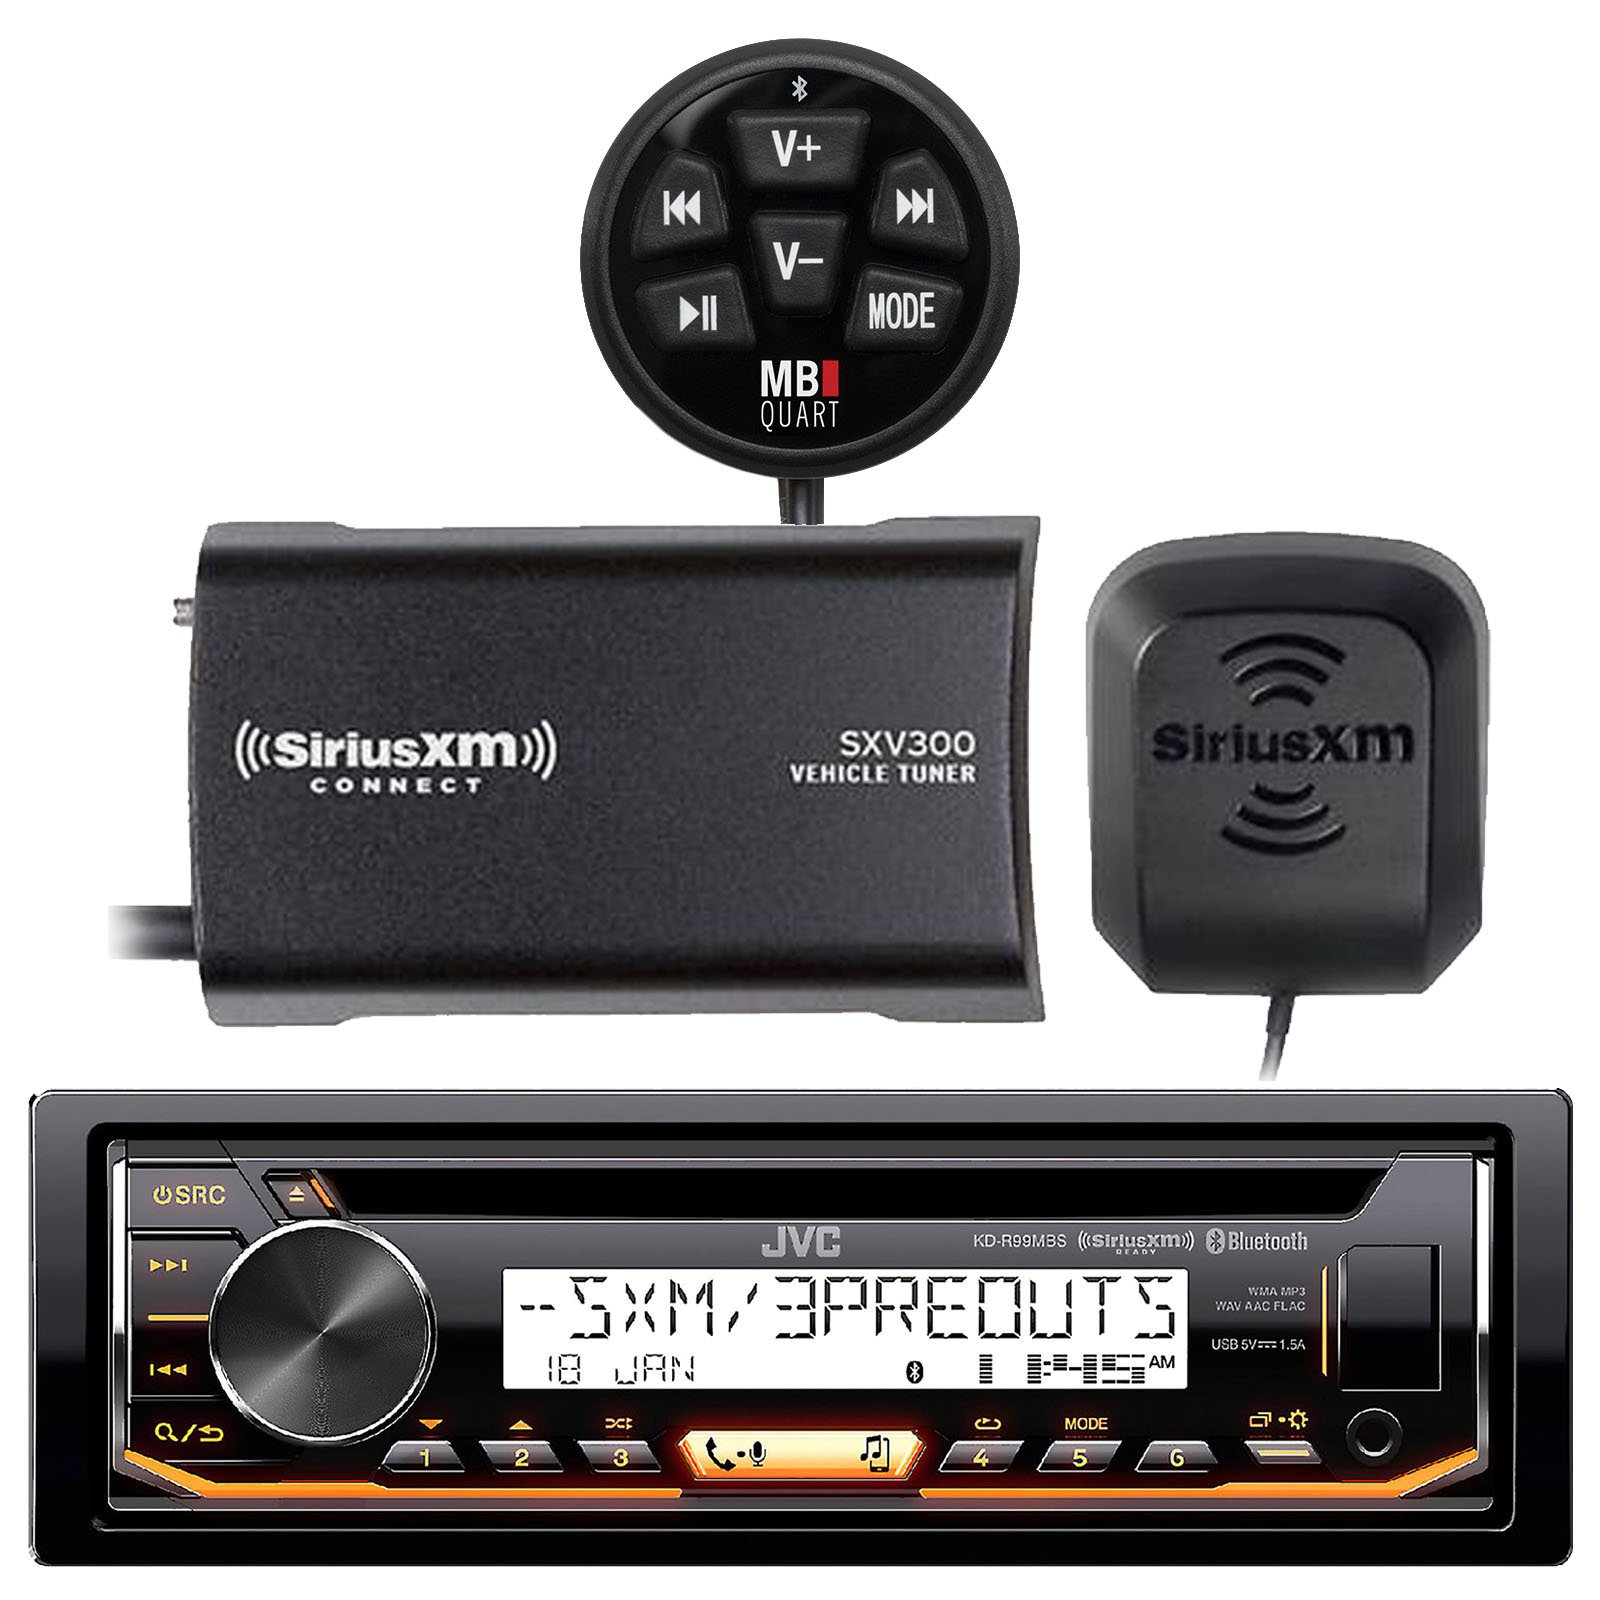 JVC KD-R97MBS Marine Boat CD MP3 SiriusXM Ready Pandora AM/FM Radio Player With and SiriusXM SXV300v1 Connect Vehicle Tuner Bundle With MB Quart N1-WBT Waterproof Wired Bluetooth Preamp Controller by EnrockMarine